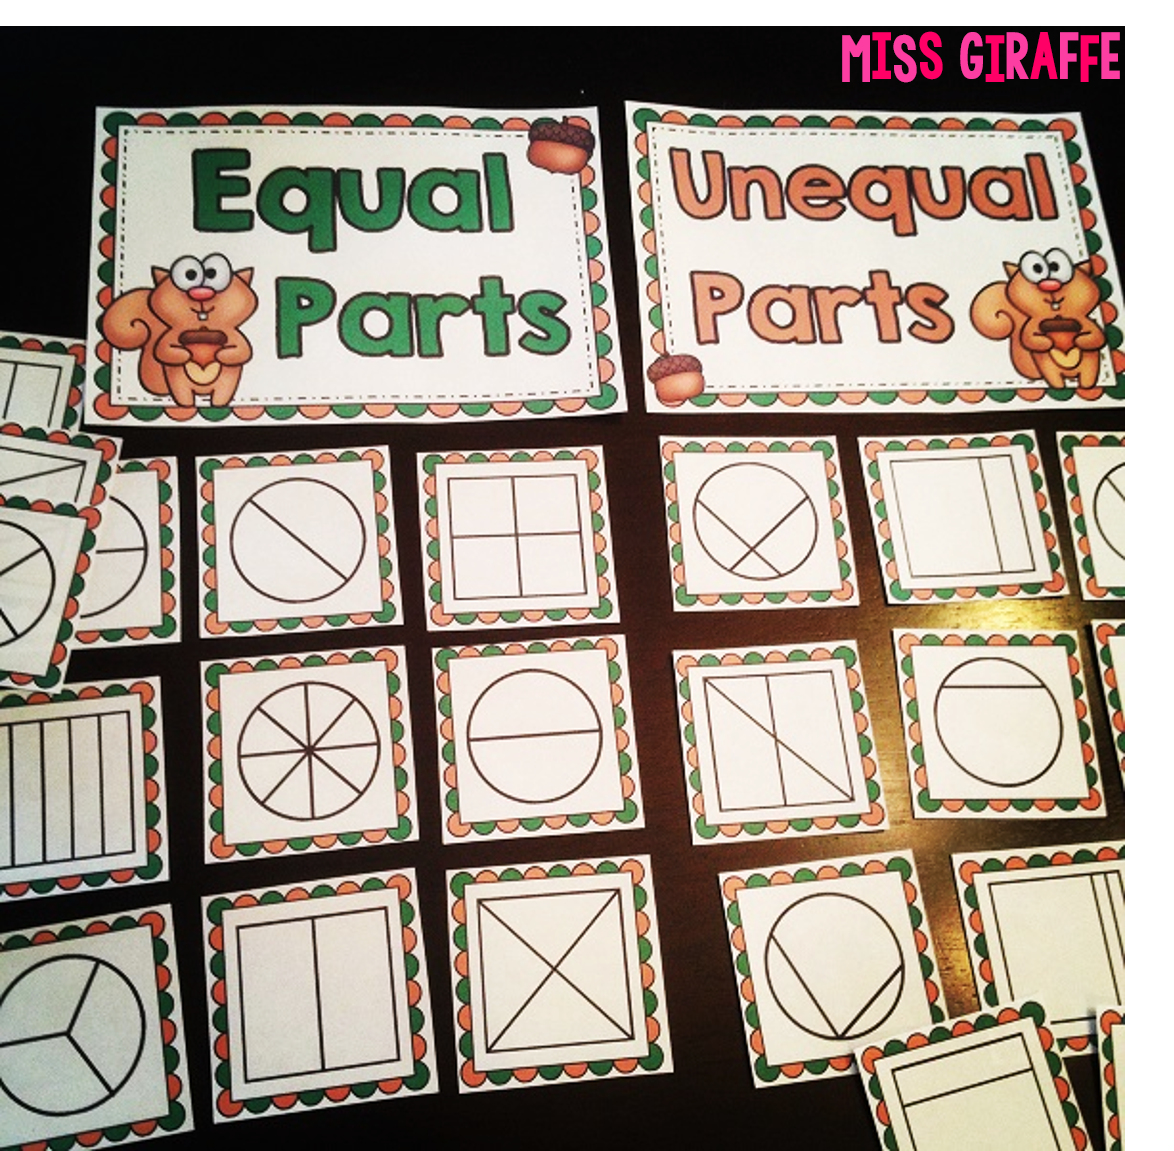 Worksheet Fractions For First Grade miss giraffes class fractions in first grade ideas like this equal parts math center lots of fun fractions